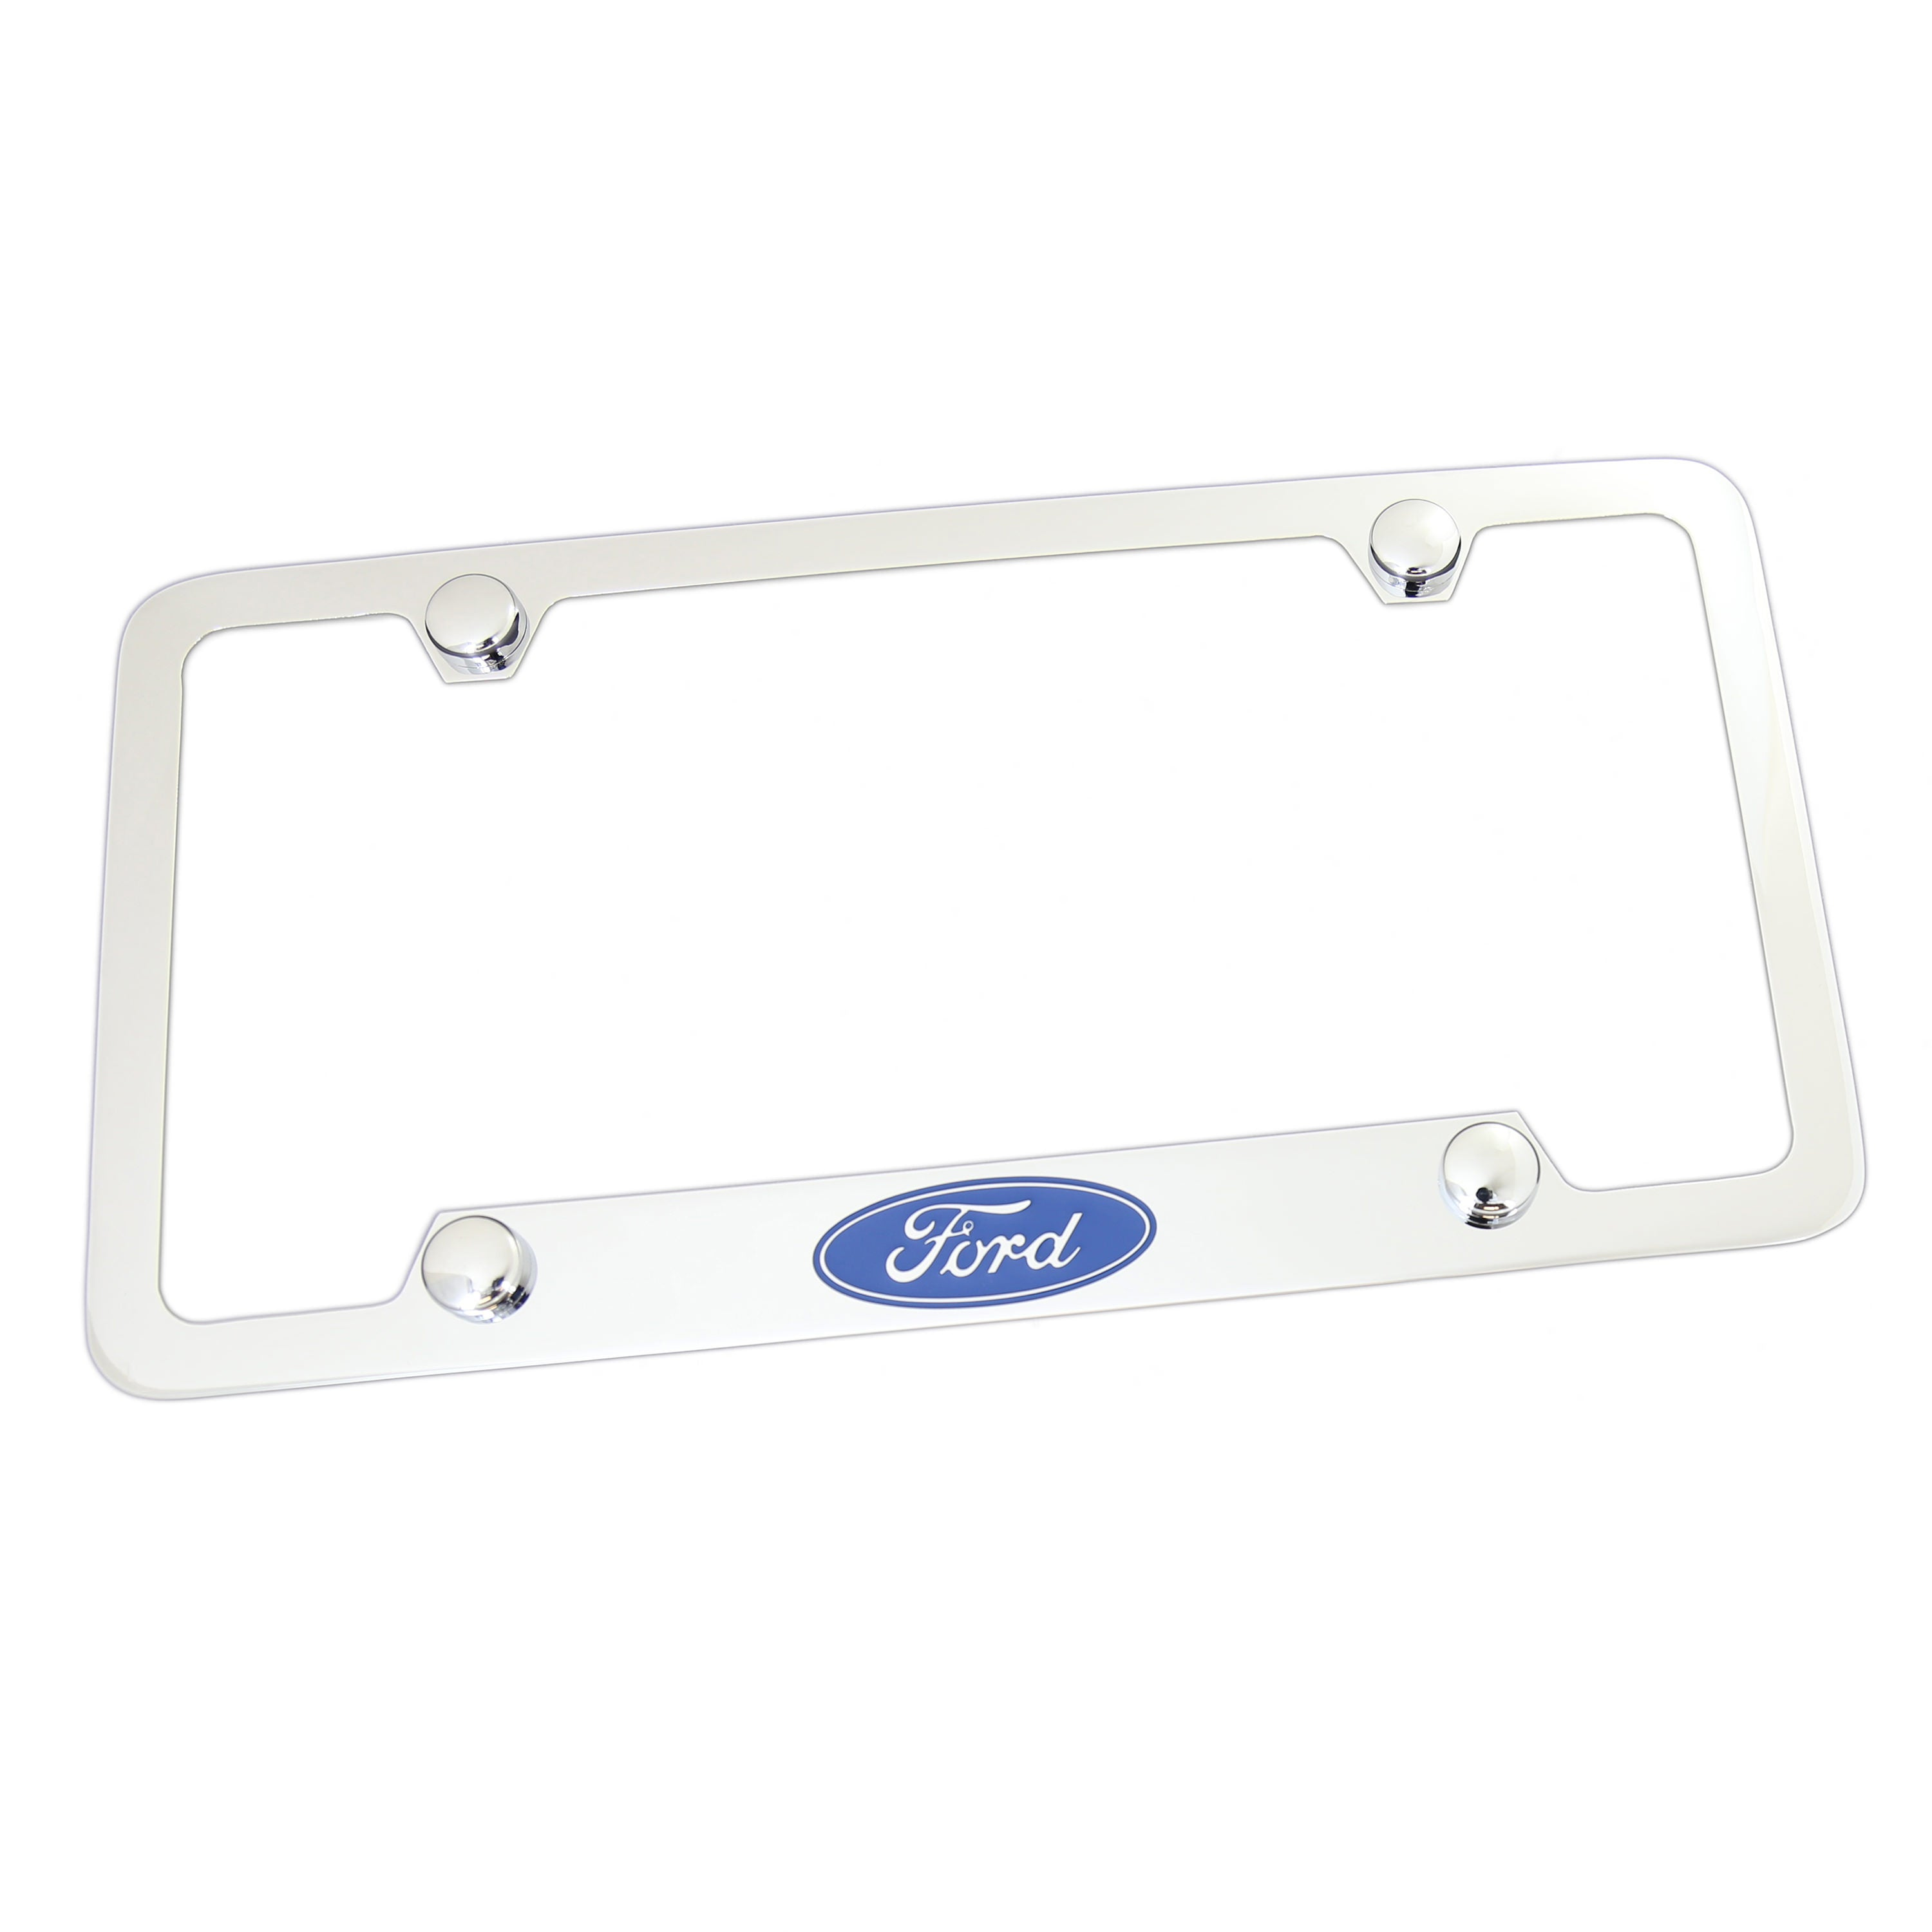 Ford License Plate Frame With Holes 4 Holes (Chrome) - Custom Werks